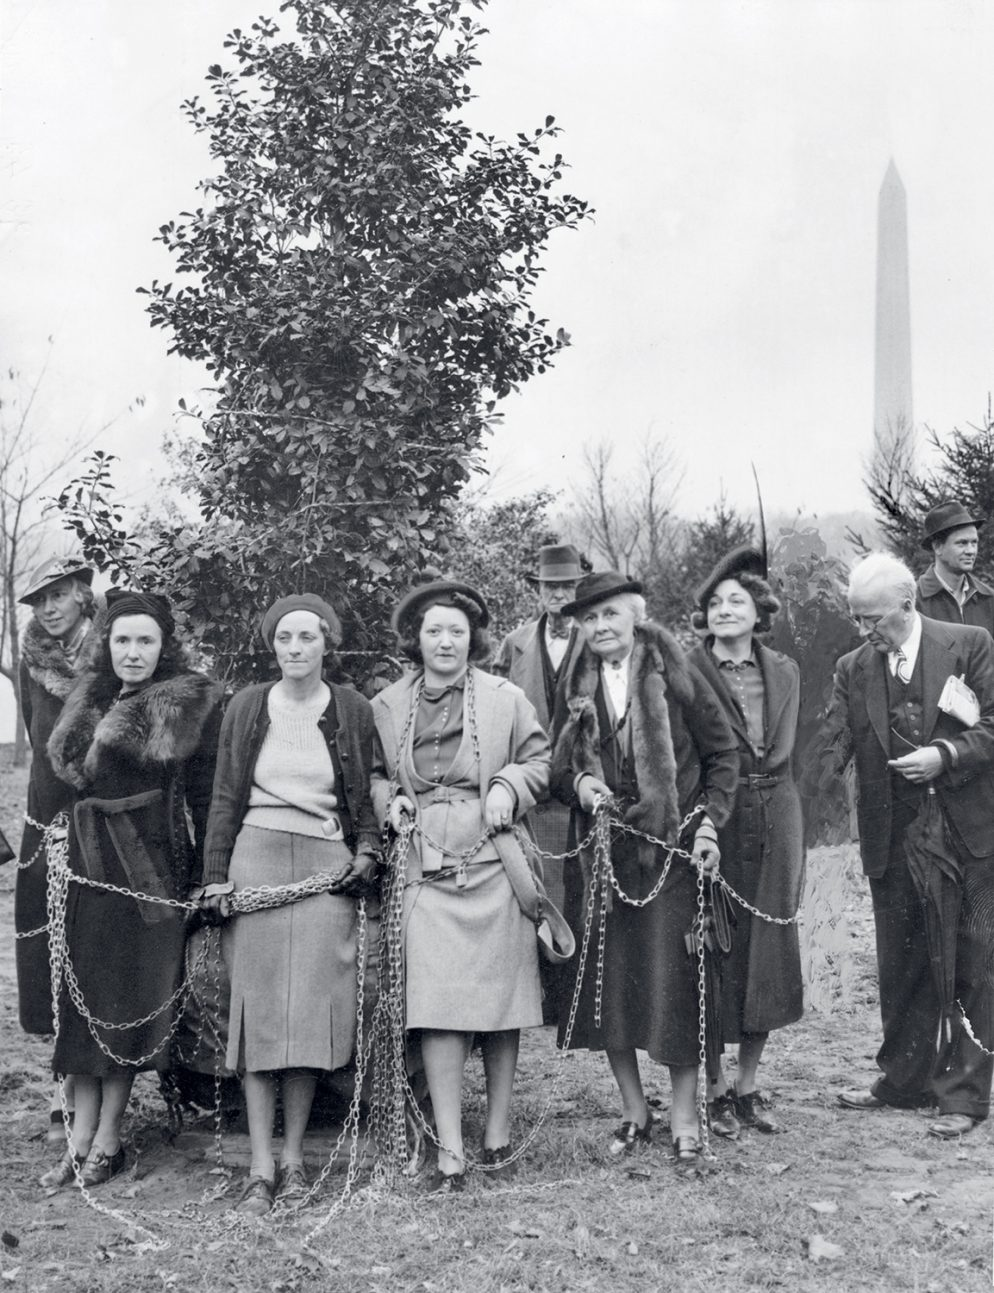 The Surprisingly Calamitous History of DC's Cherry Blossoms